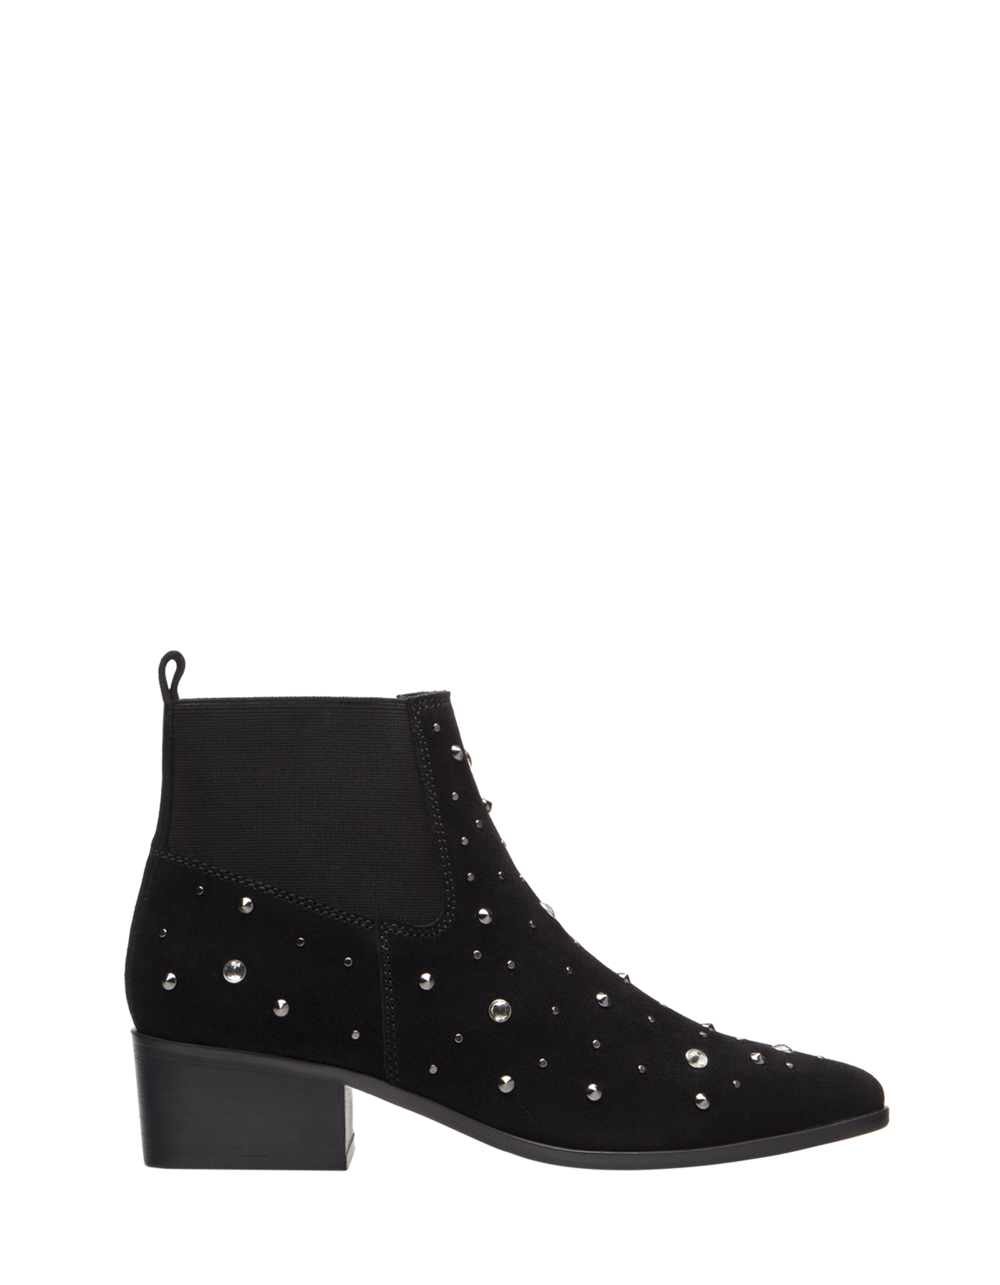 Stradivarius_fw15_shoes (1).png